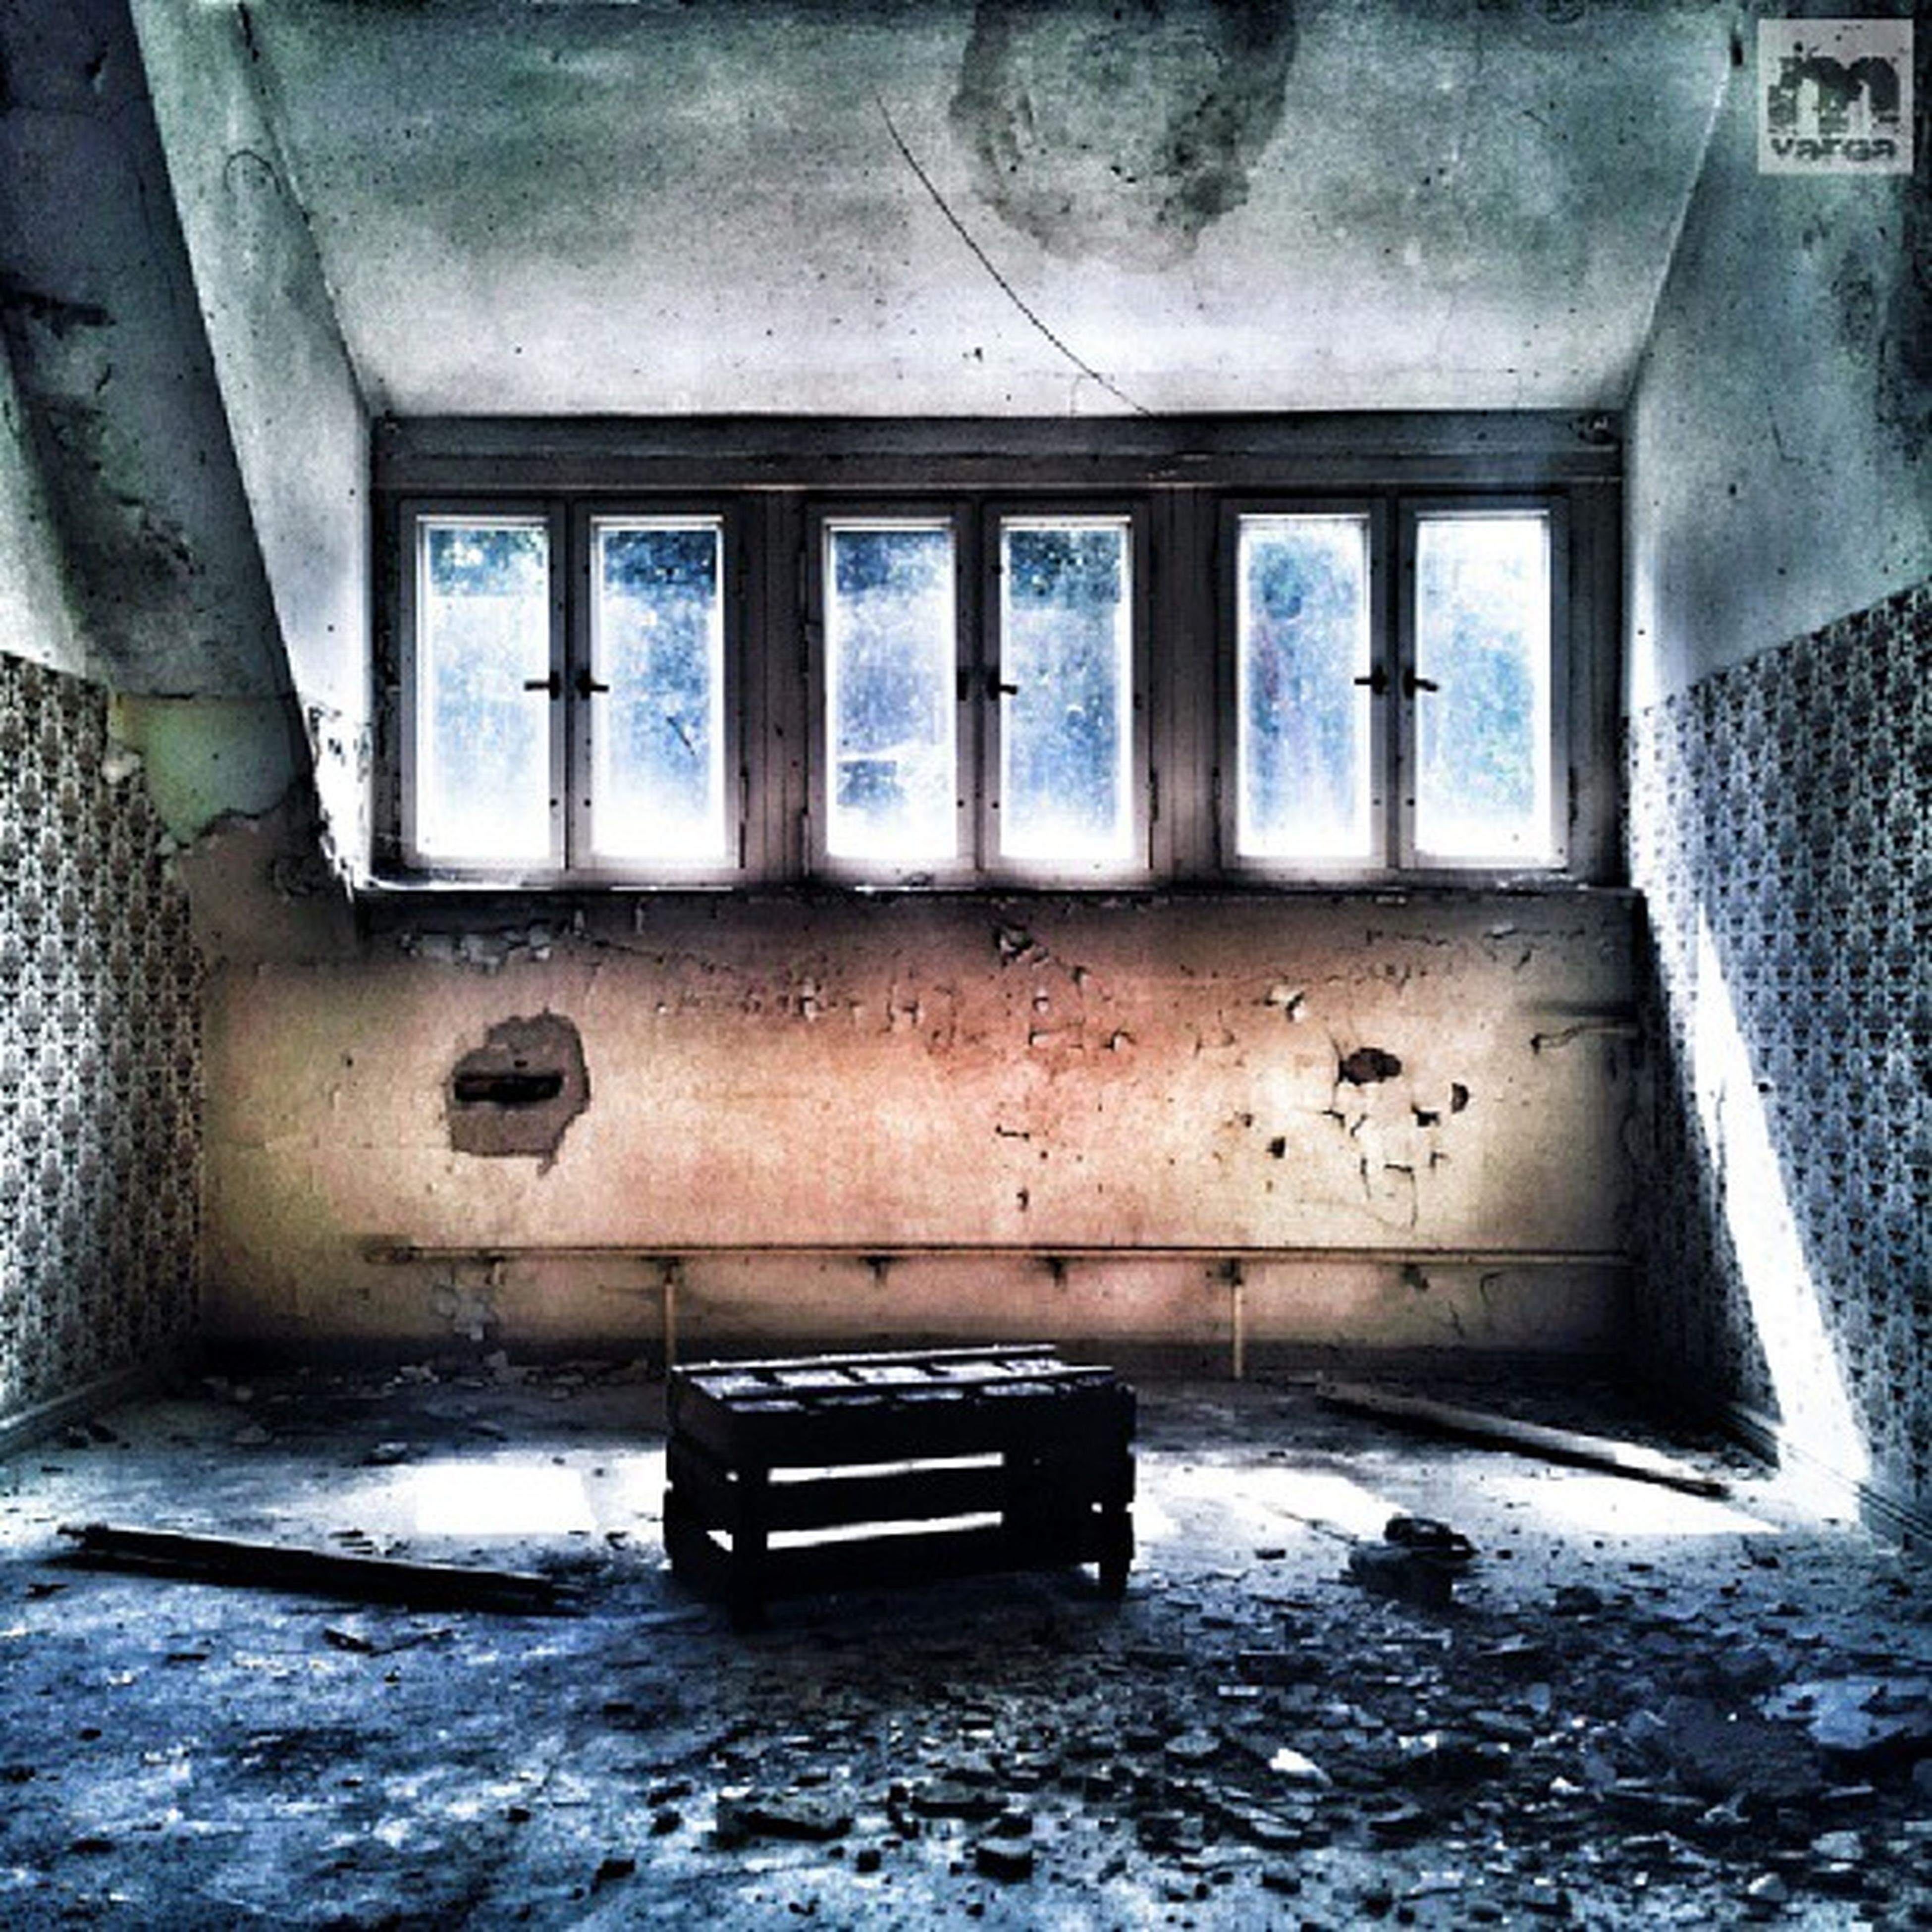 abandoned, obsolete, window, damaged, indoors, deterioration, run-down, old, architecture, built structure, weathered, bad condition, house, broken, absence, messy, interior, day, wall - building feature, empty